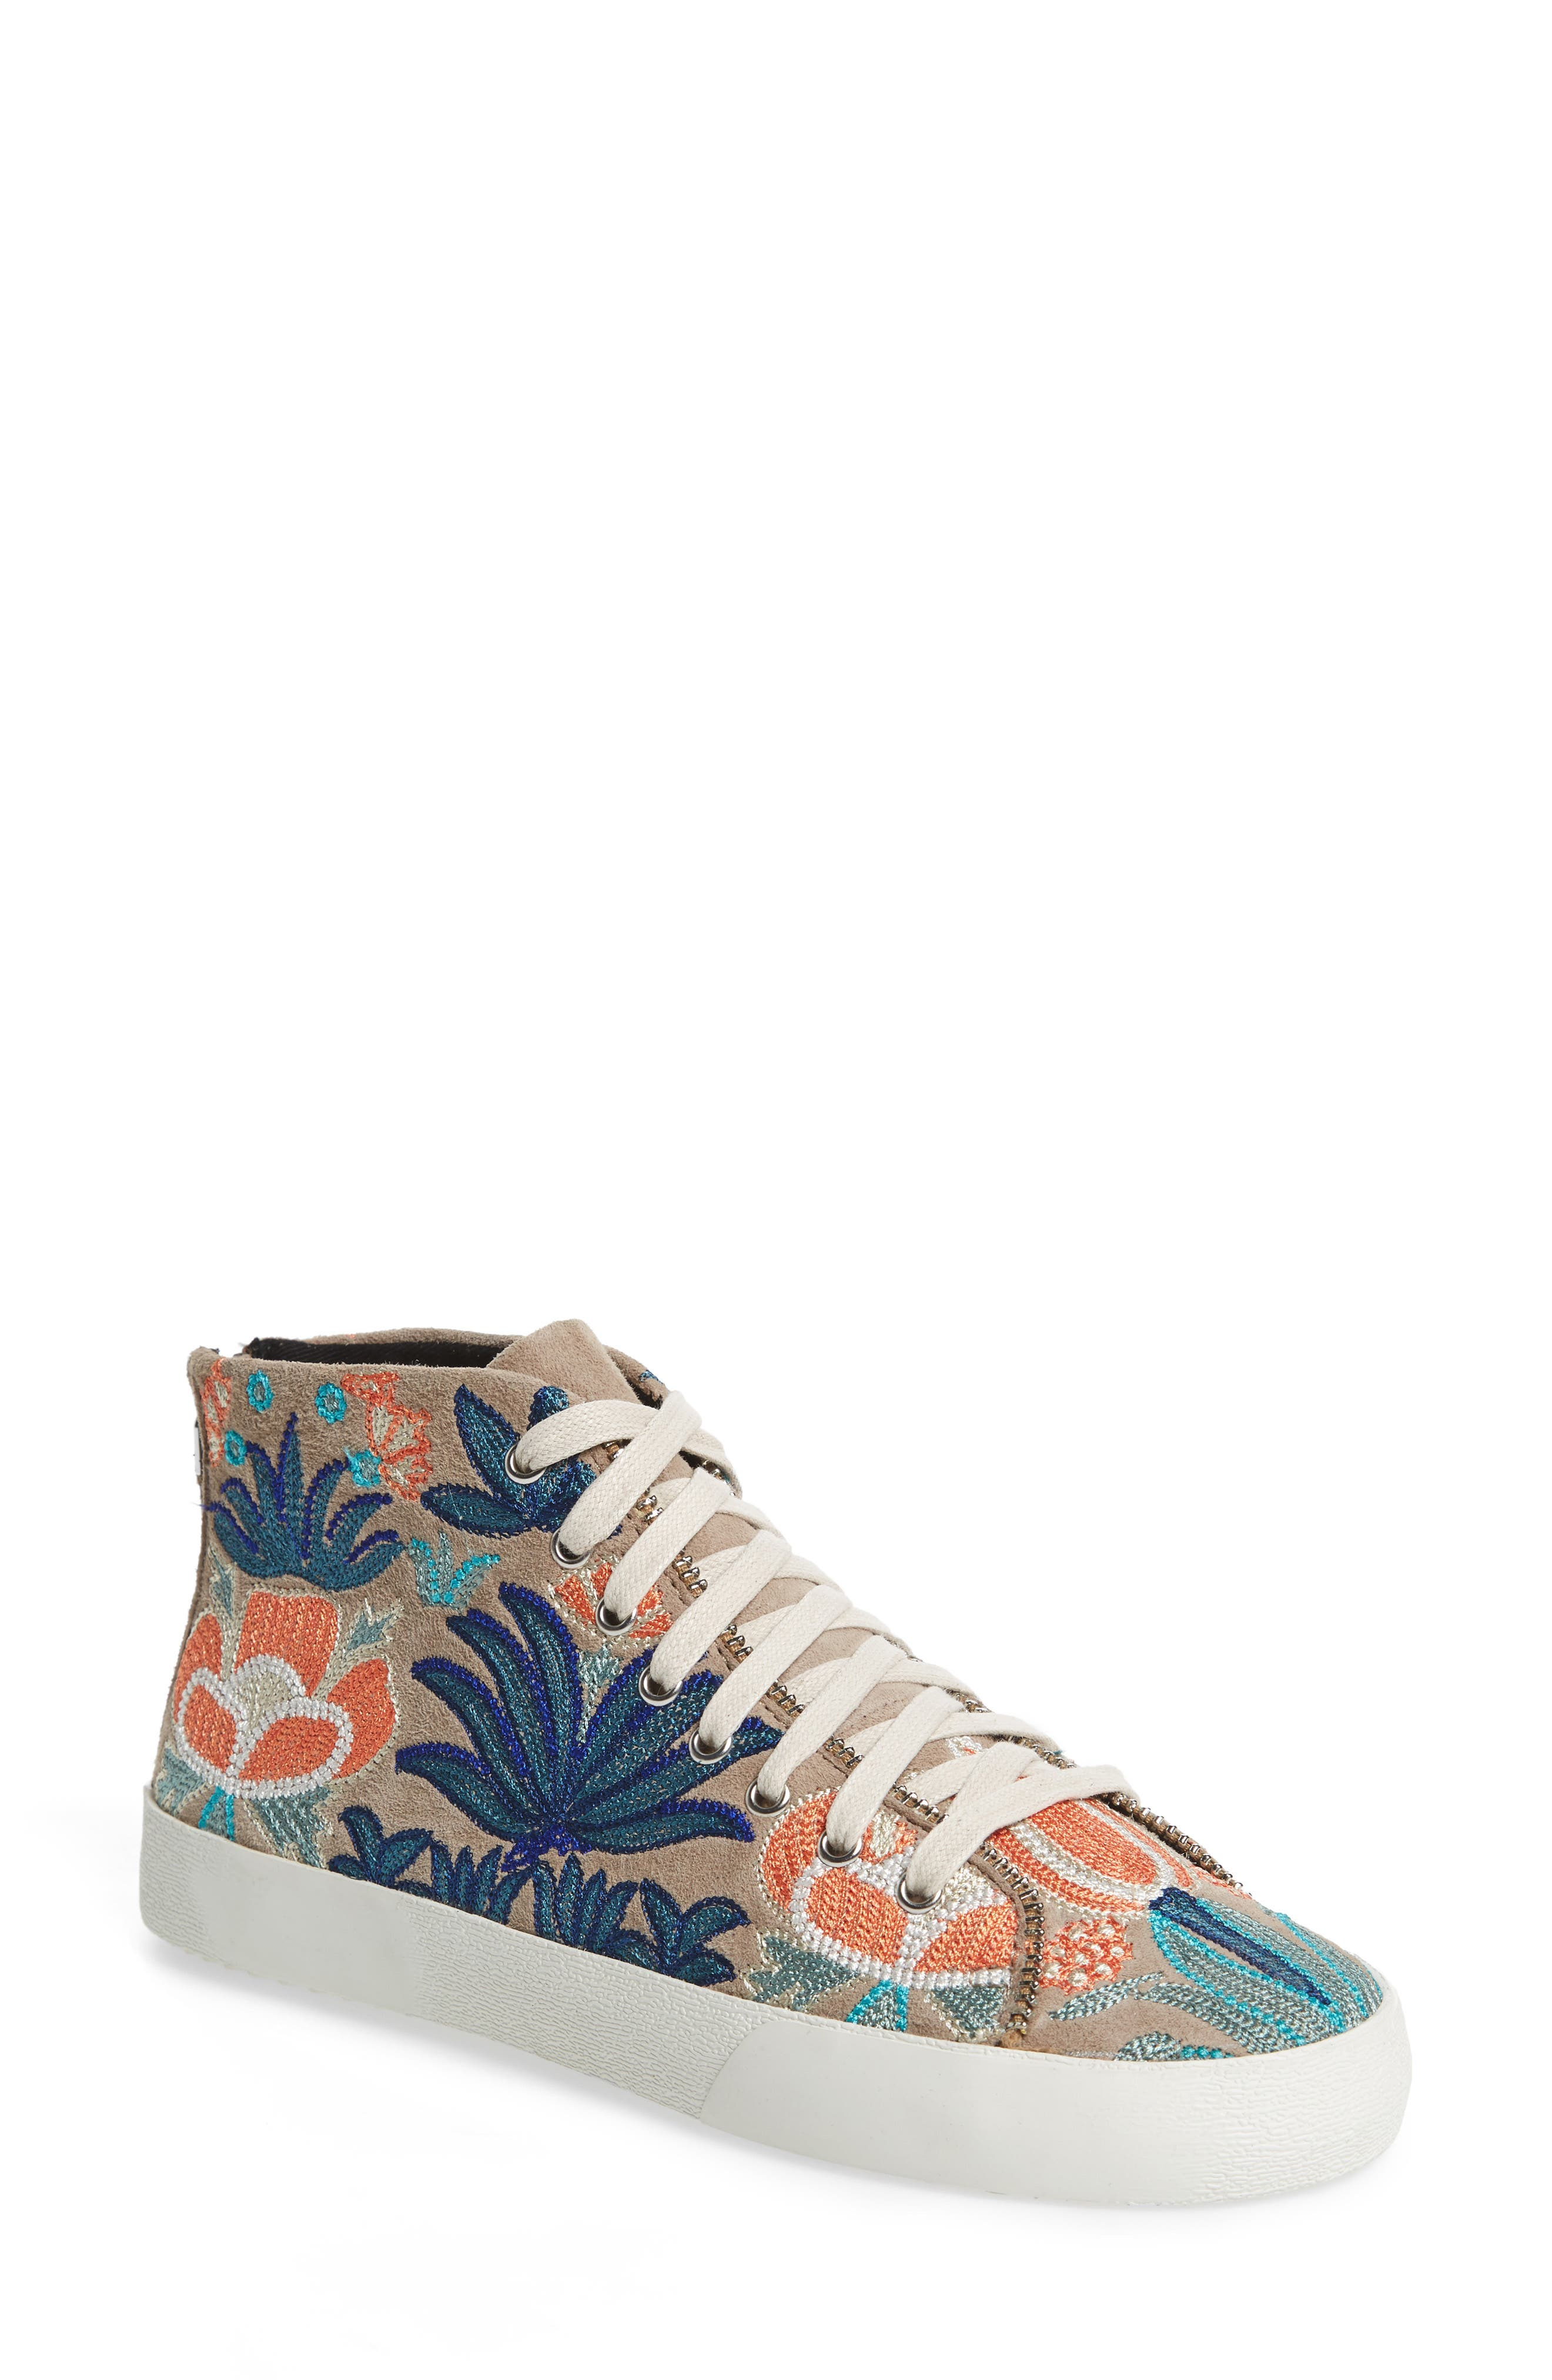 Zaina Embroidered Sneaker,                         Main,                         color, Sand